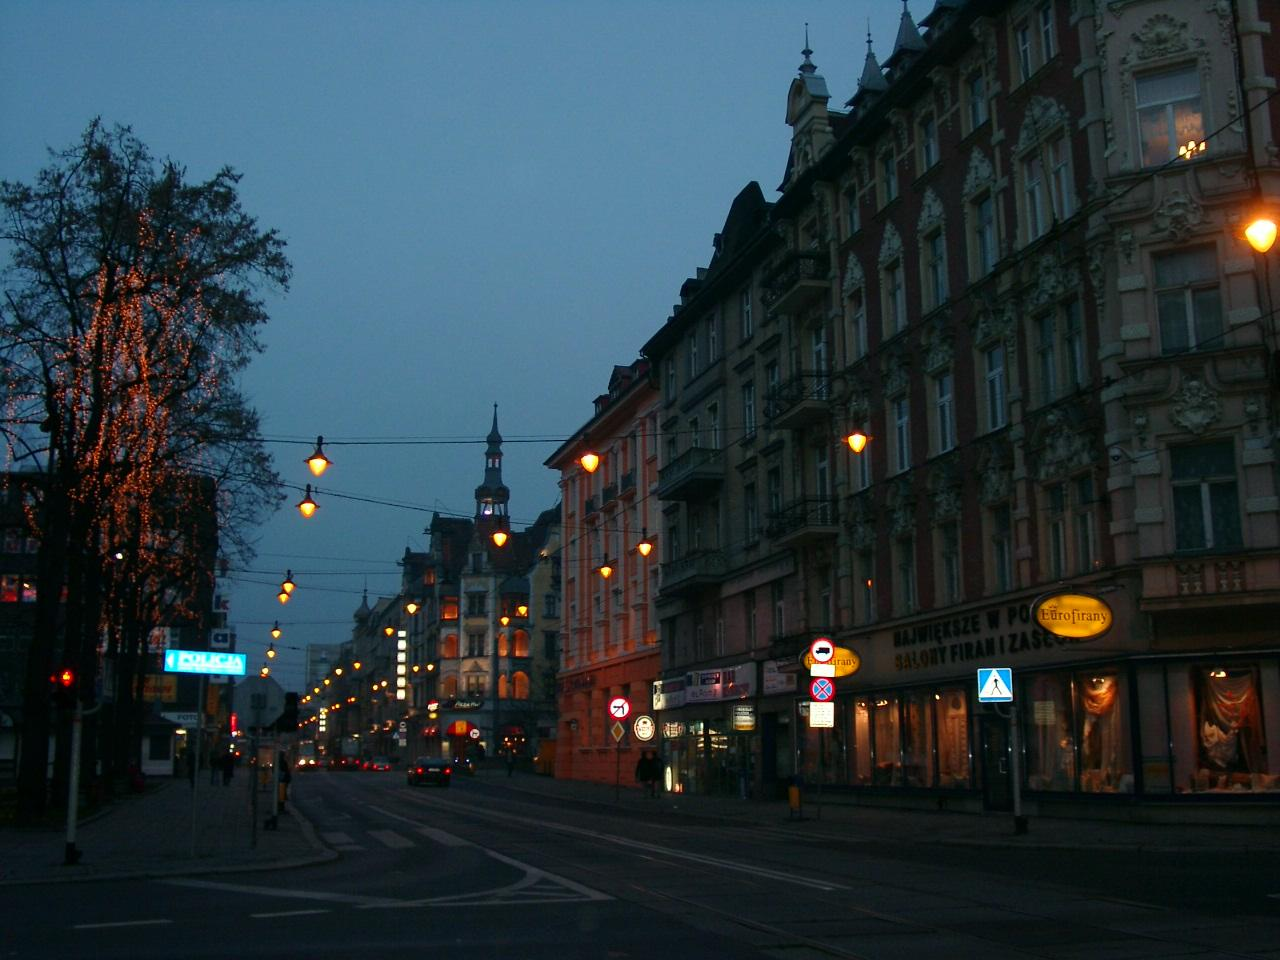 Gliwice Poland  city pictures gallery : Poland Gliwice view picture, Poland Gliwice view photo, Poland Gliwice ...